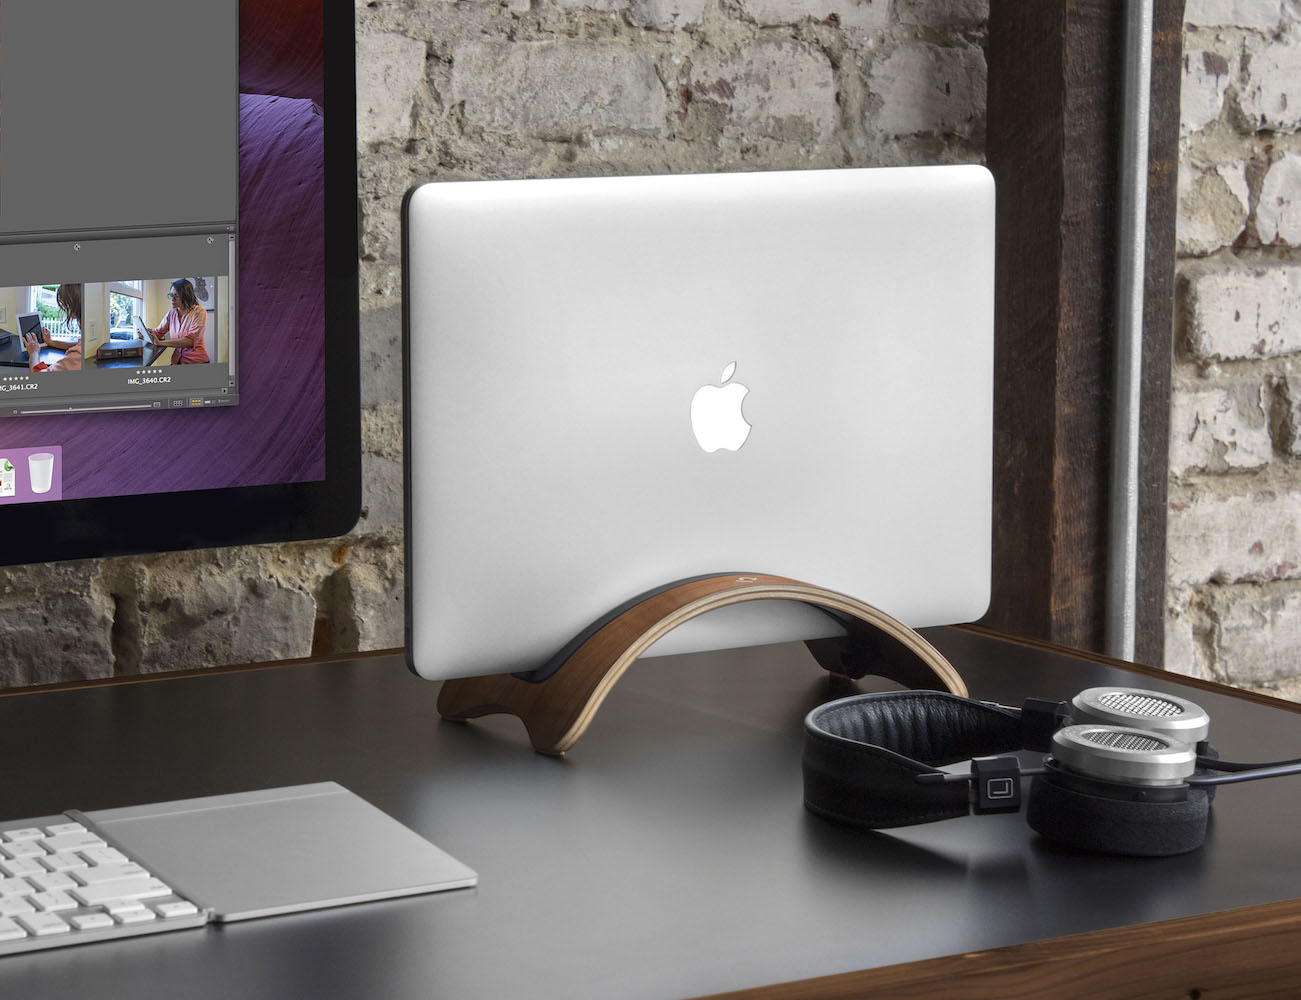 Bookarc Mod – Vertical MacBook Stand by Twelve South